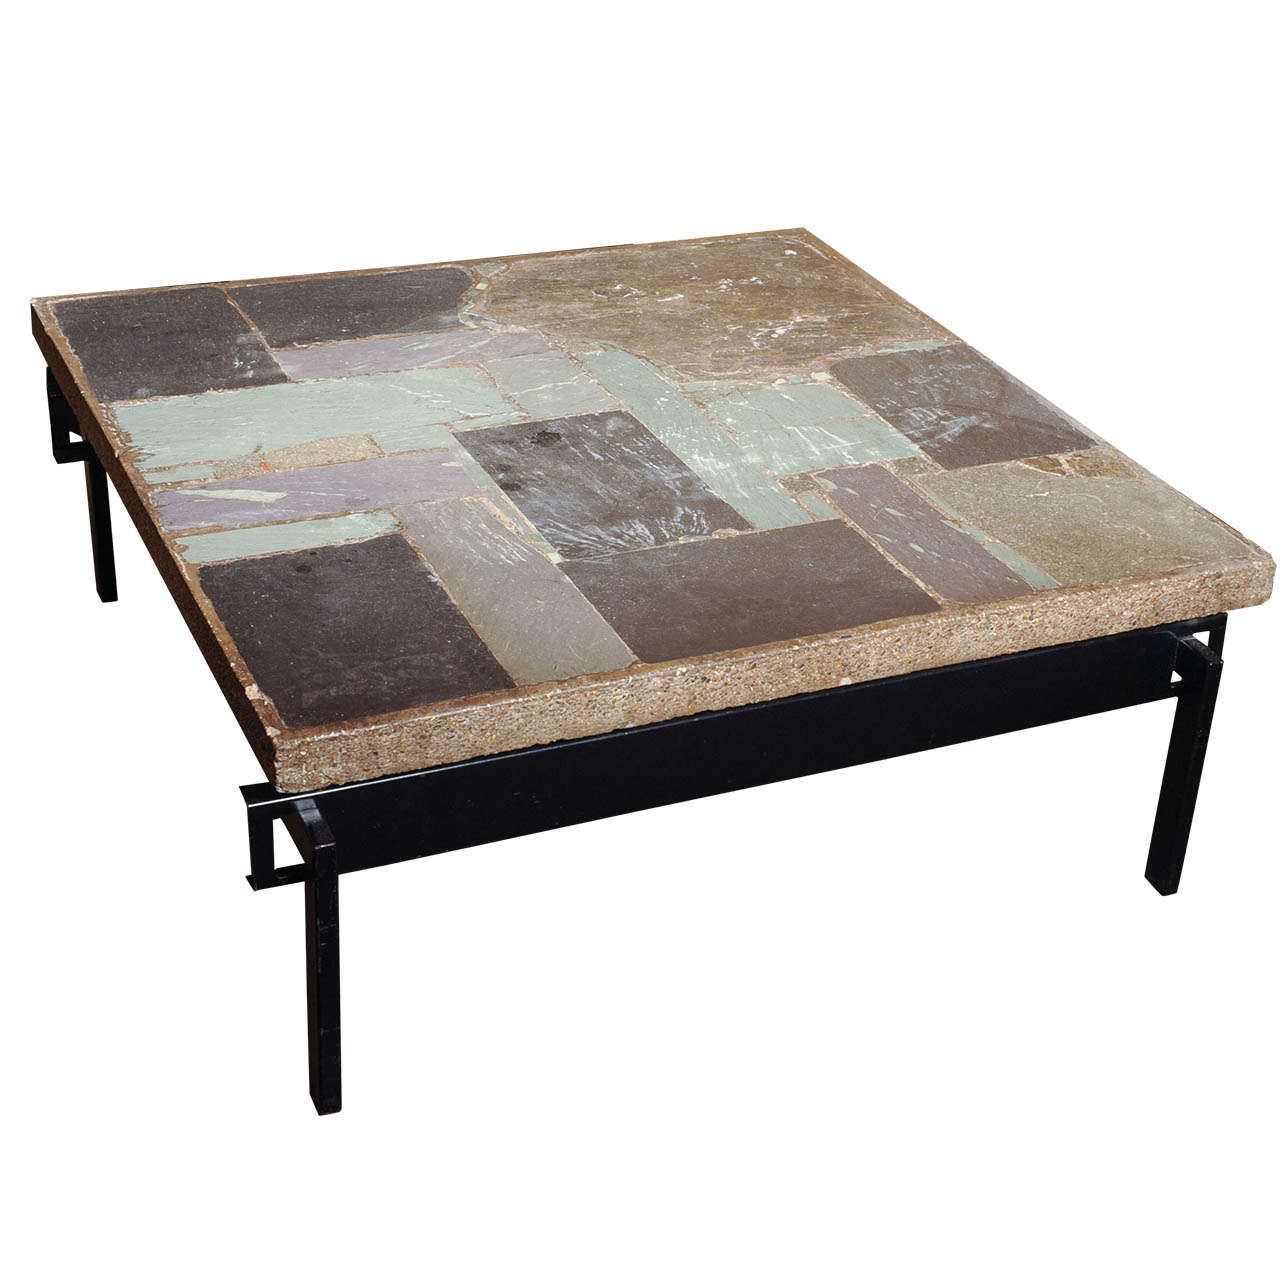 Wonderful Slate Stone Coffee Table by Paul Kingma 1 - Wonderful Slate Stone Coffee Table By Paul Kingma At 1stdibs